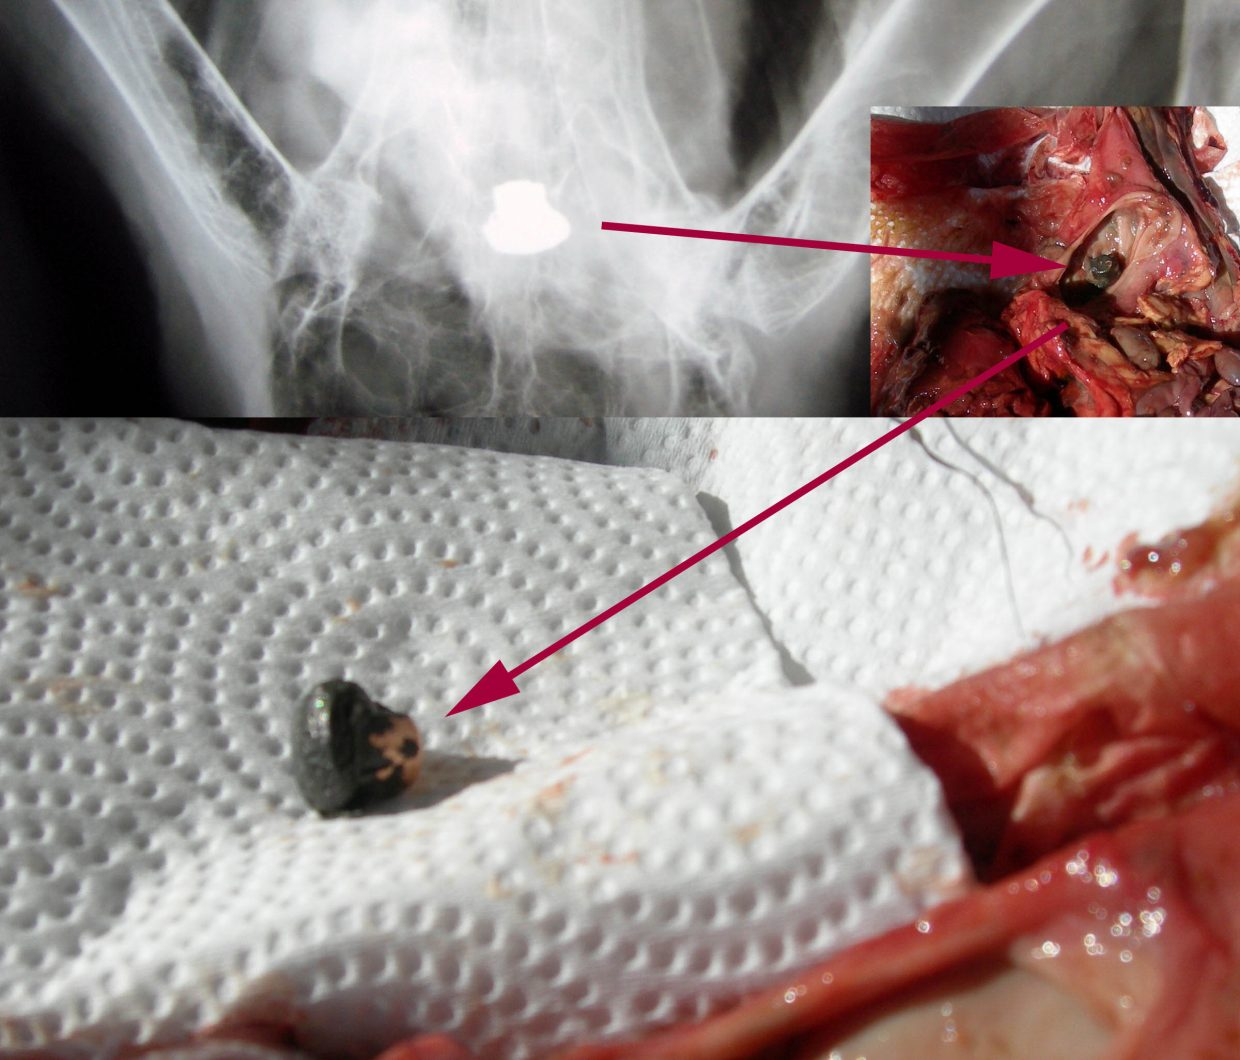 X-ray image and photo from necropsy procedure showing lead-core bullet found in the stomach of a bald eagle admitted to Saving Our Avian Resources in Iowa.